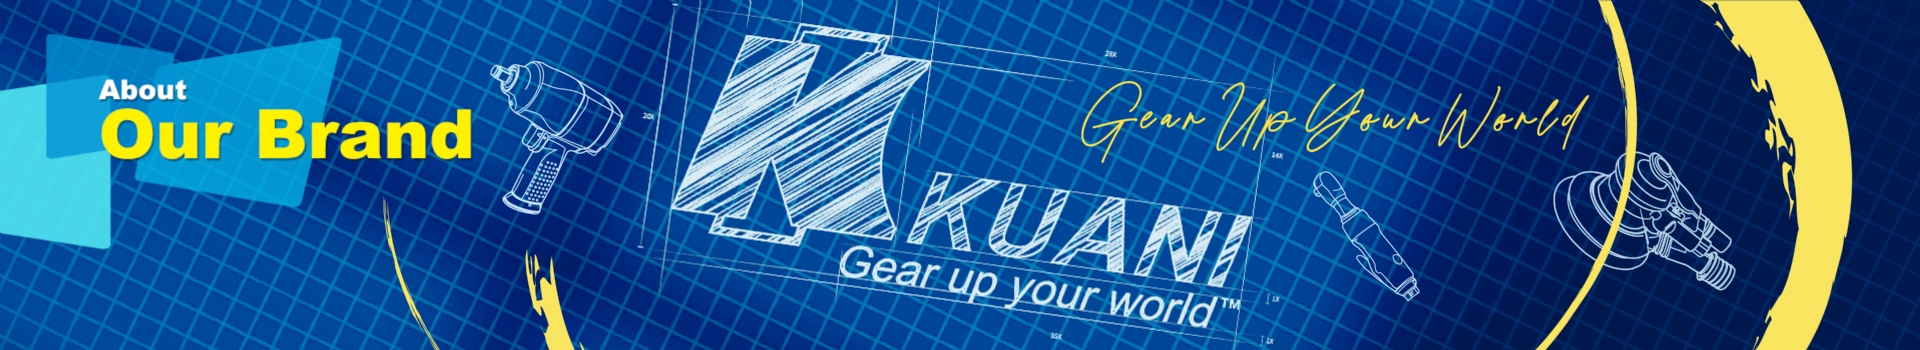 About our Brand - KUANI